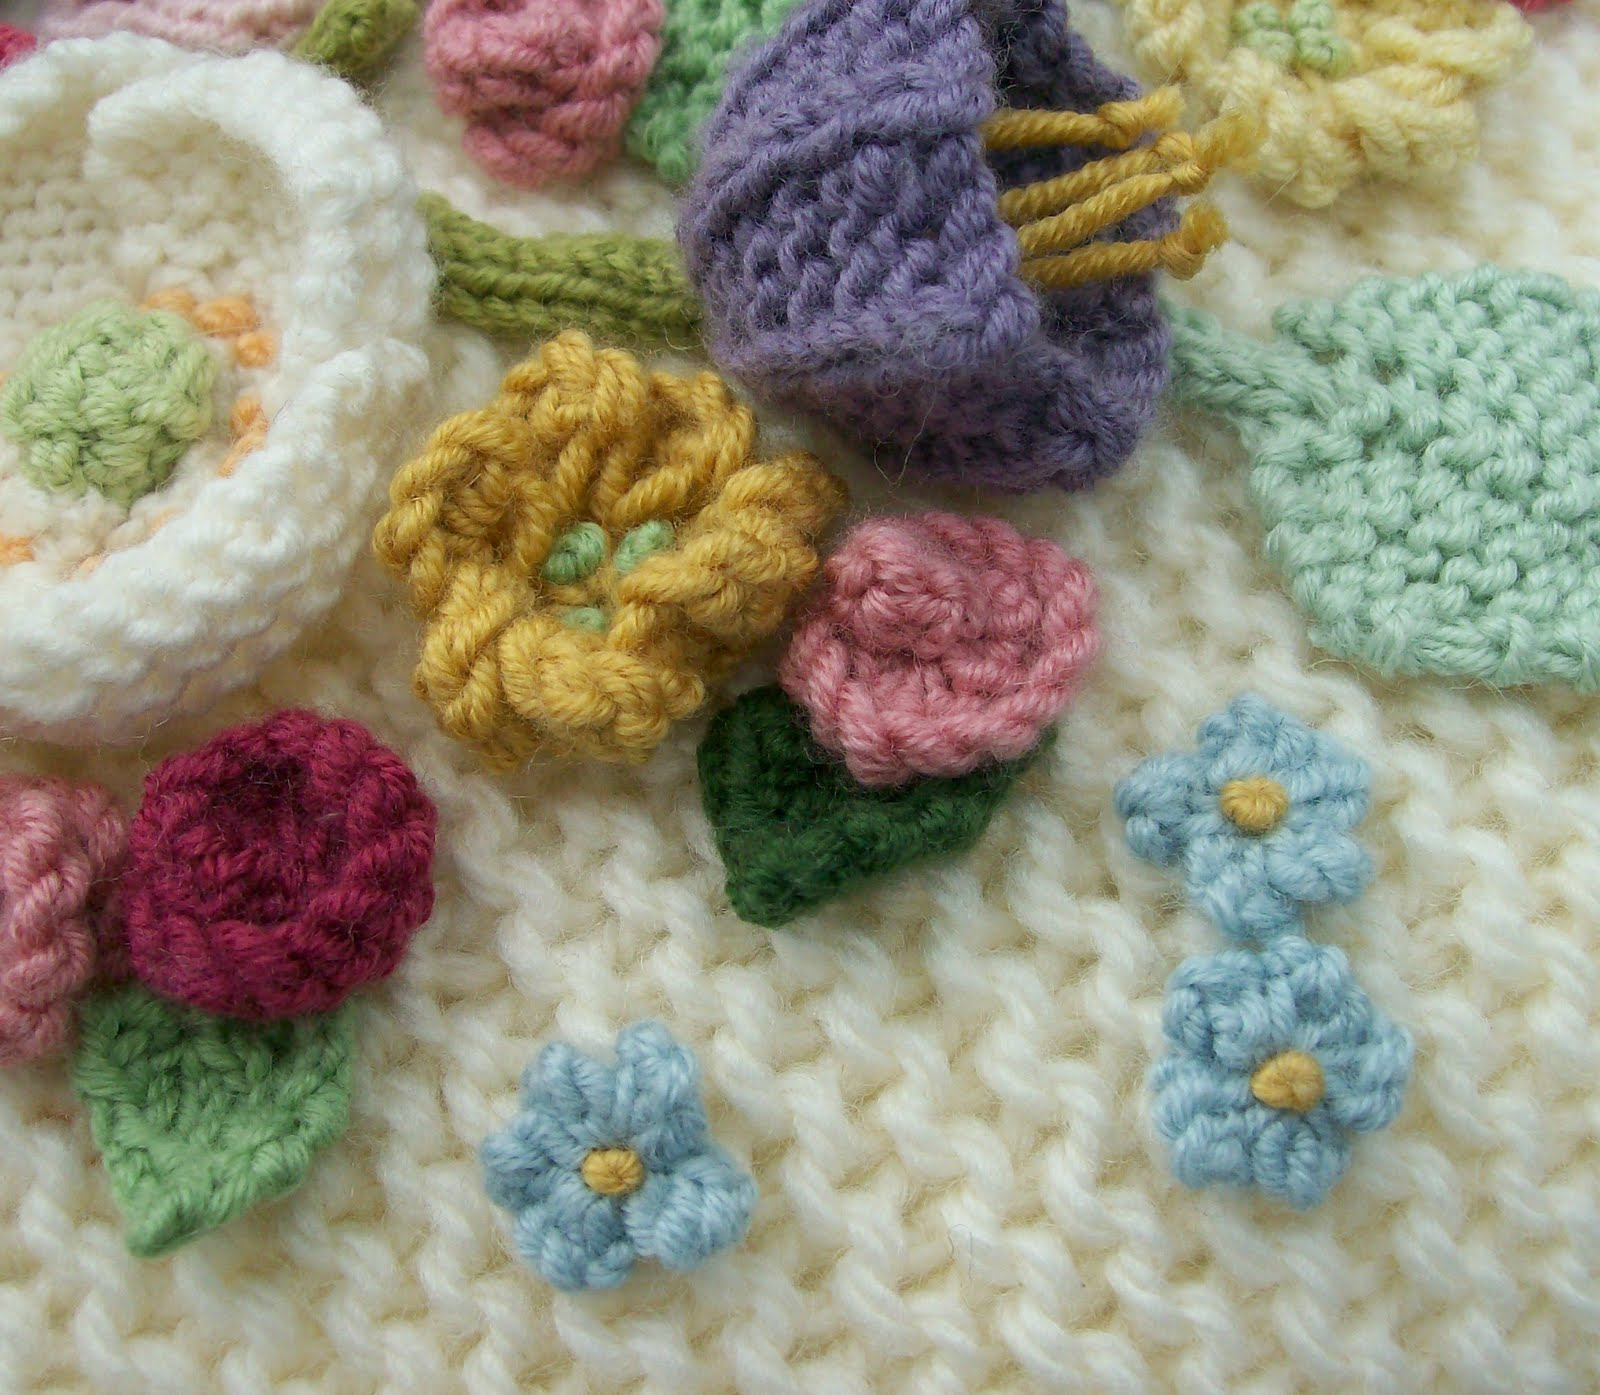 Asombroso Small Flower Knitting Pattern Composición - Manta de Tejer ...